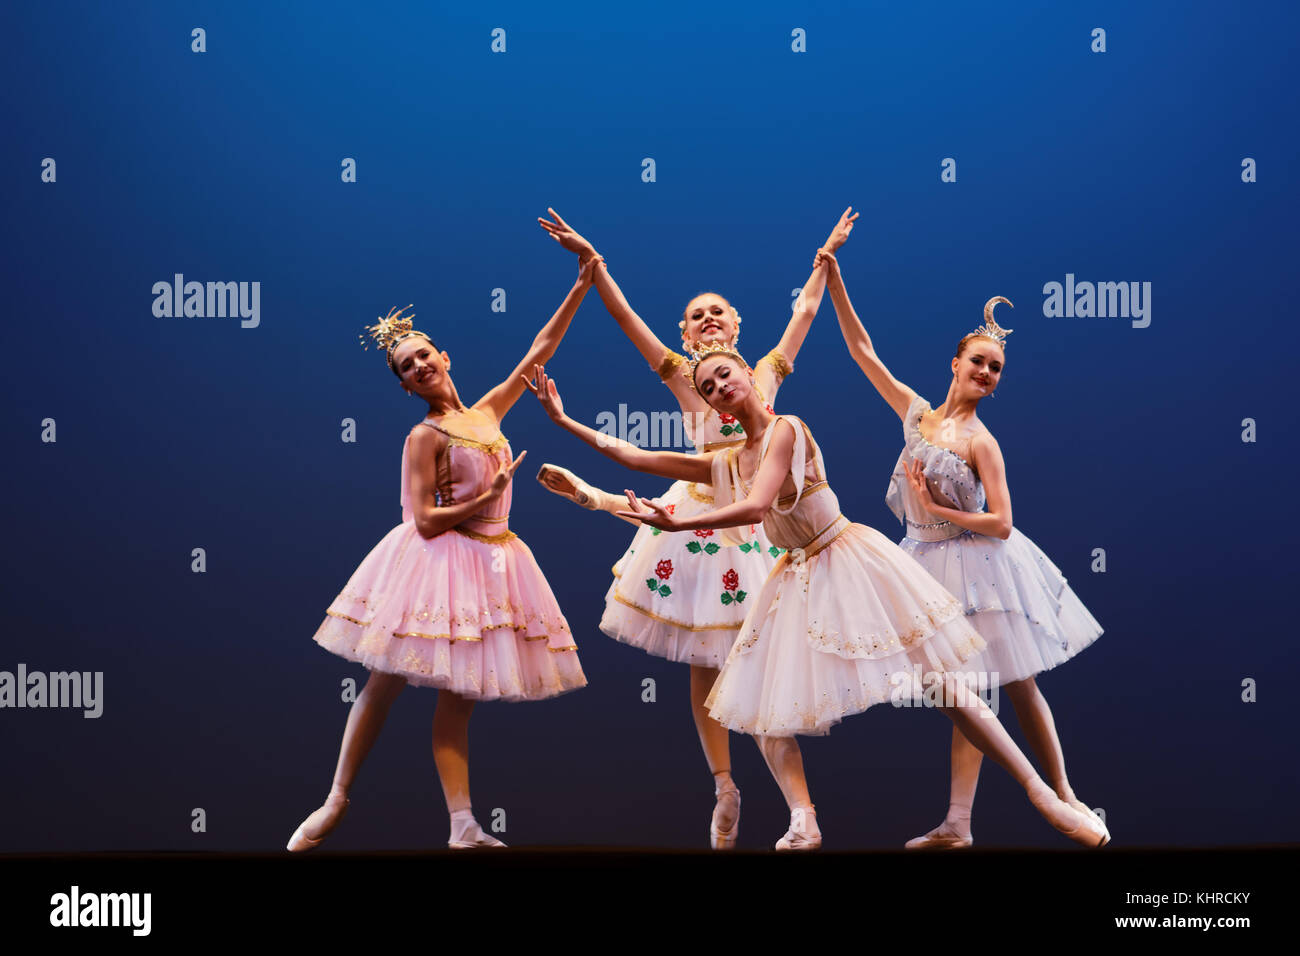 St. Petersburg, Russia - November 16, 2017: Students of Vaganova Ballet Academy perform during anniversary gala - Stock Image